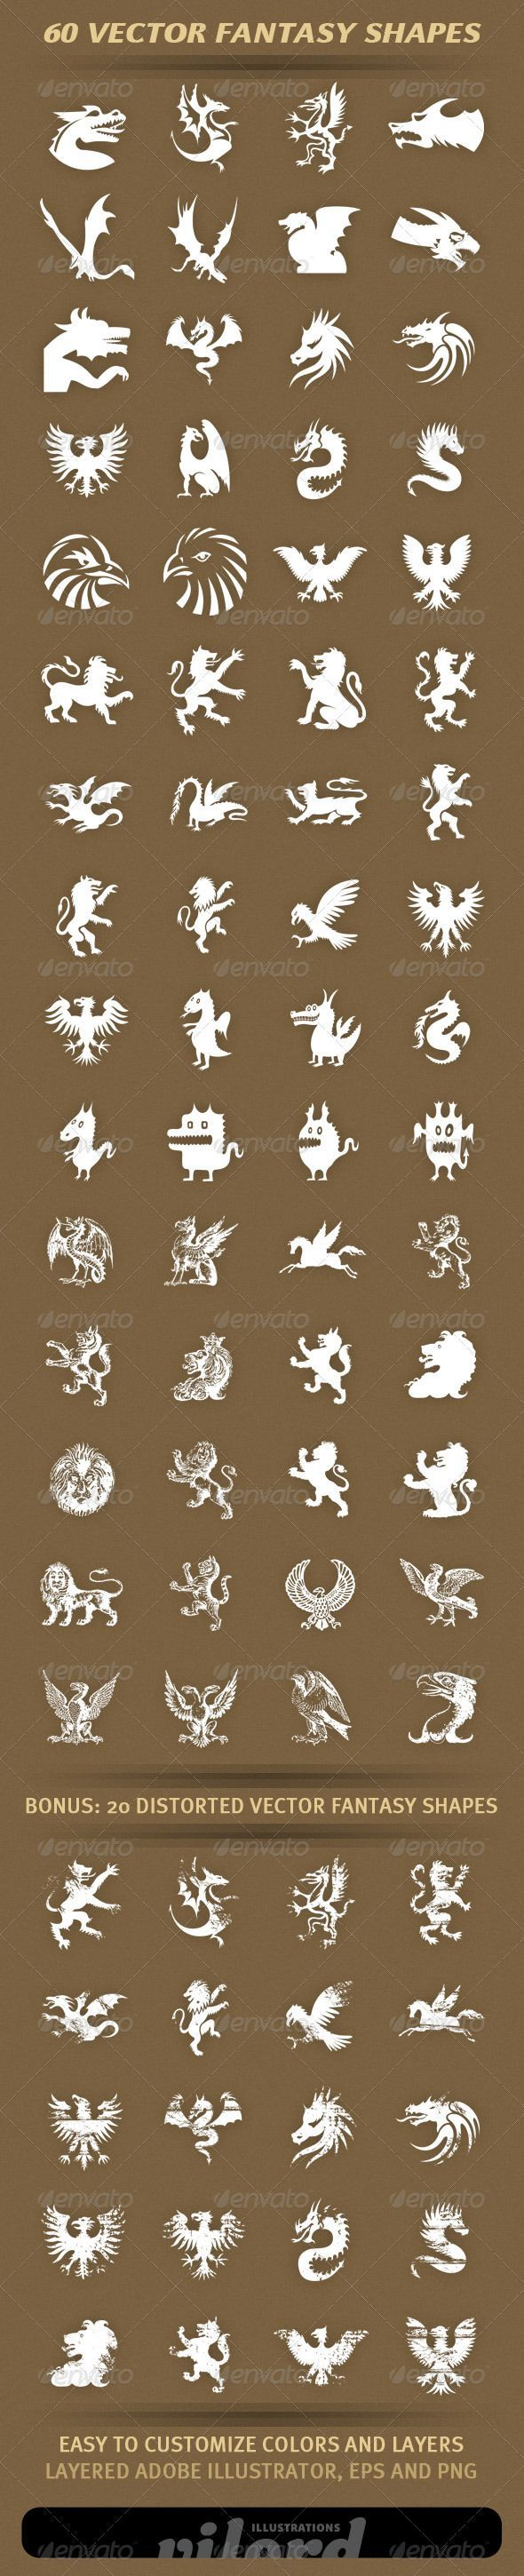 60 Fantasy Shapes #GraphicRiver Set of 40 vector f: